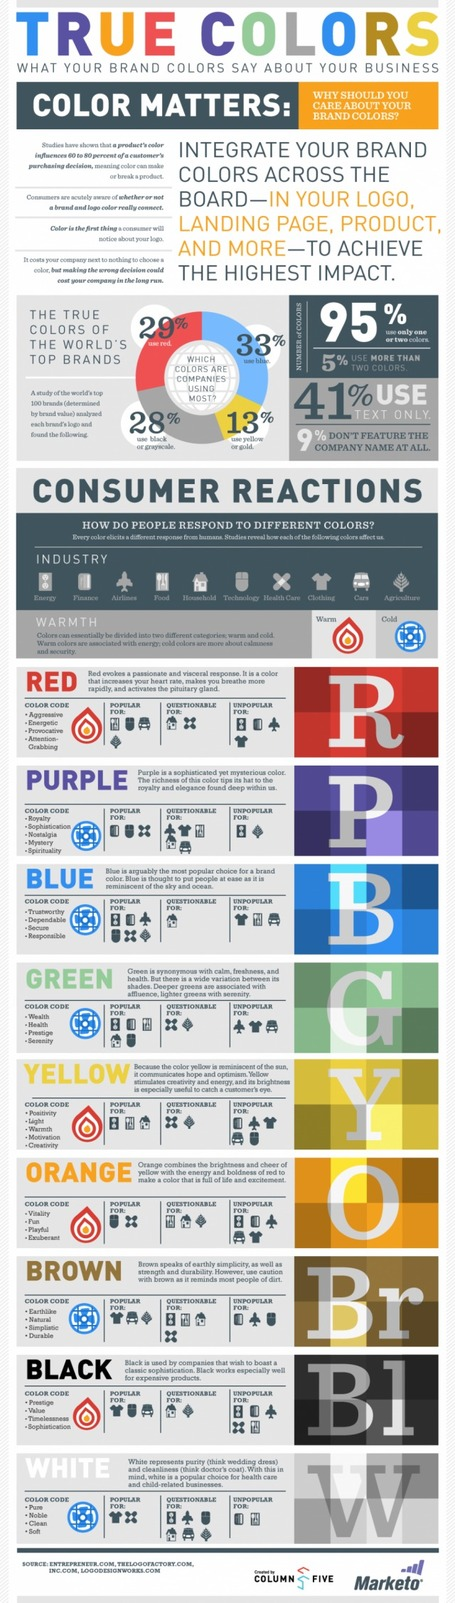 How Your Brand Colors Impact Your Audience | Marketing Revolution | Scoop.it